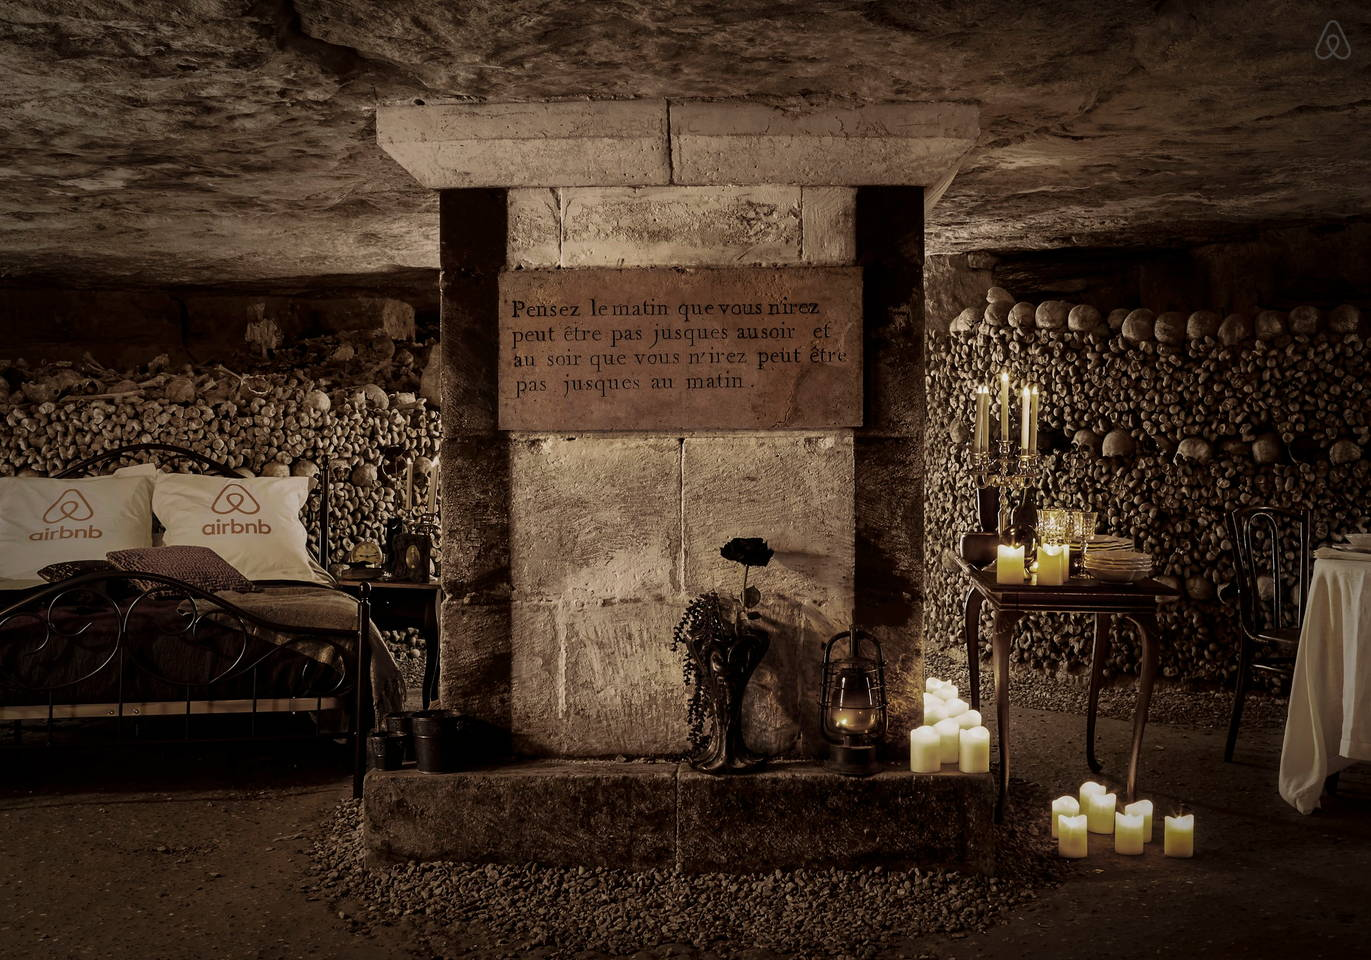 Airbnb catacombs 1